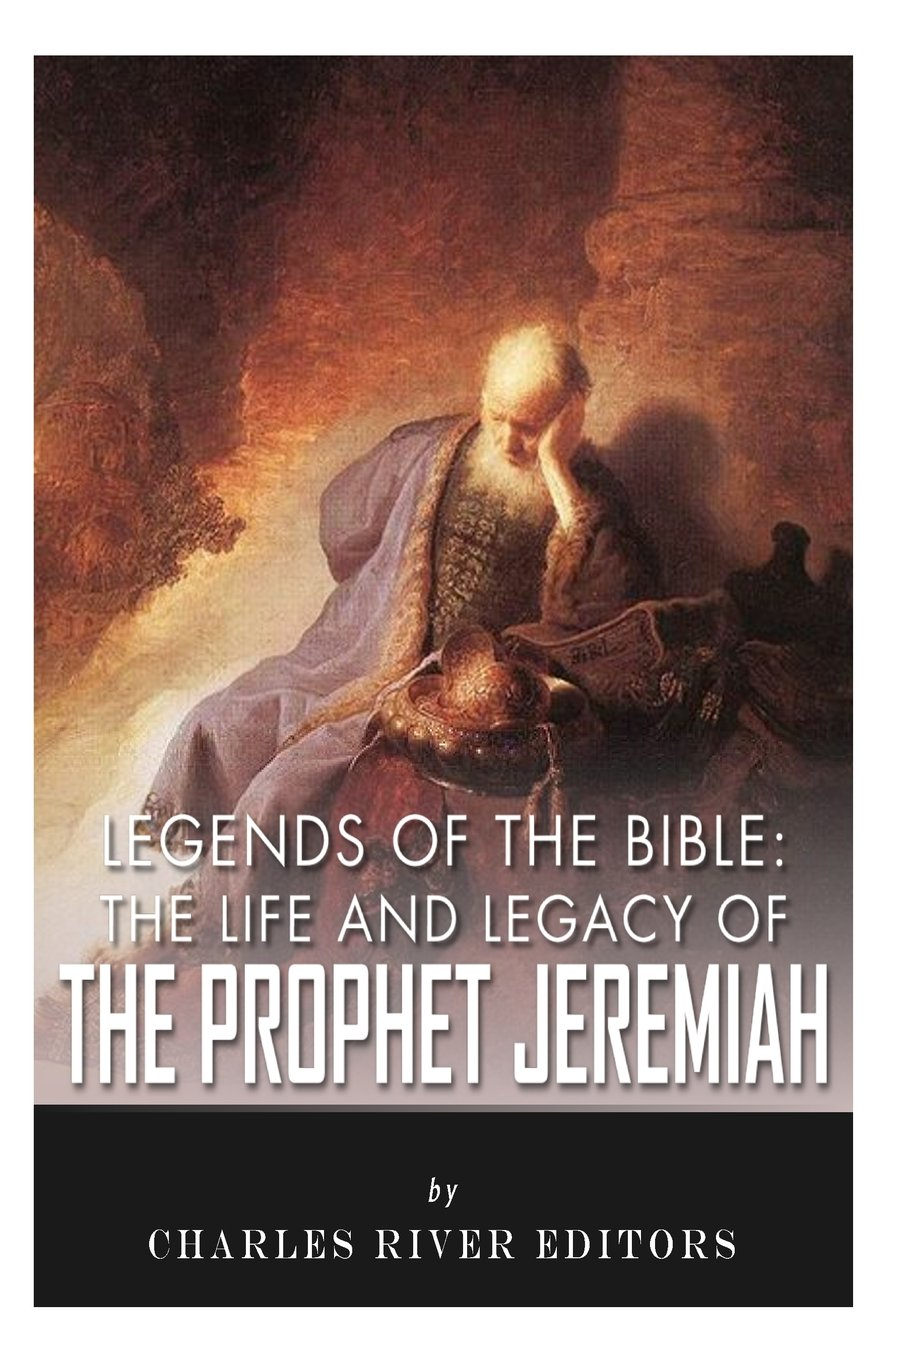 The Prophet Jeremiah: a biography. Book of the Cry of Jeremiah 38